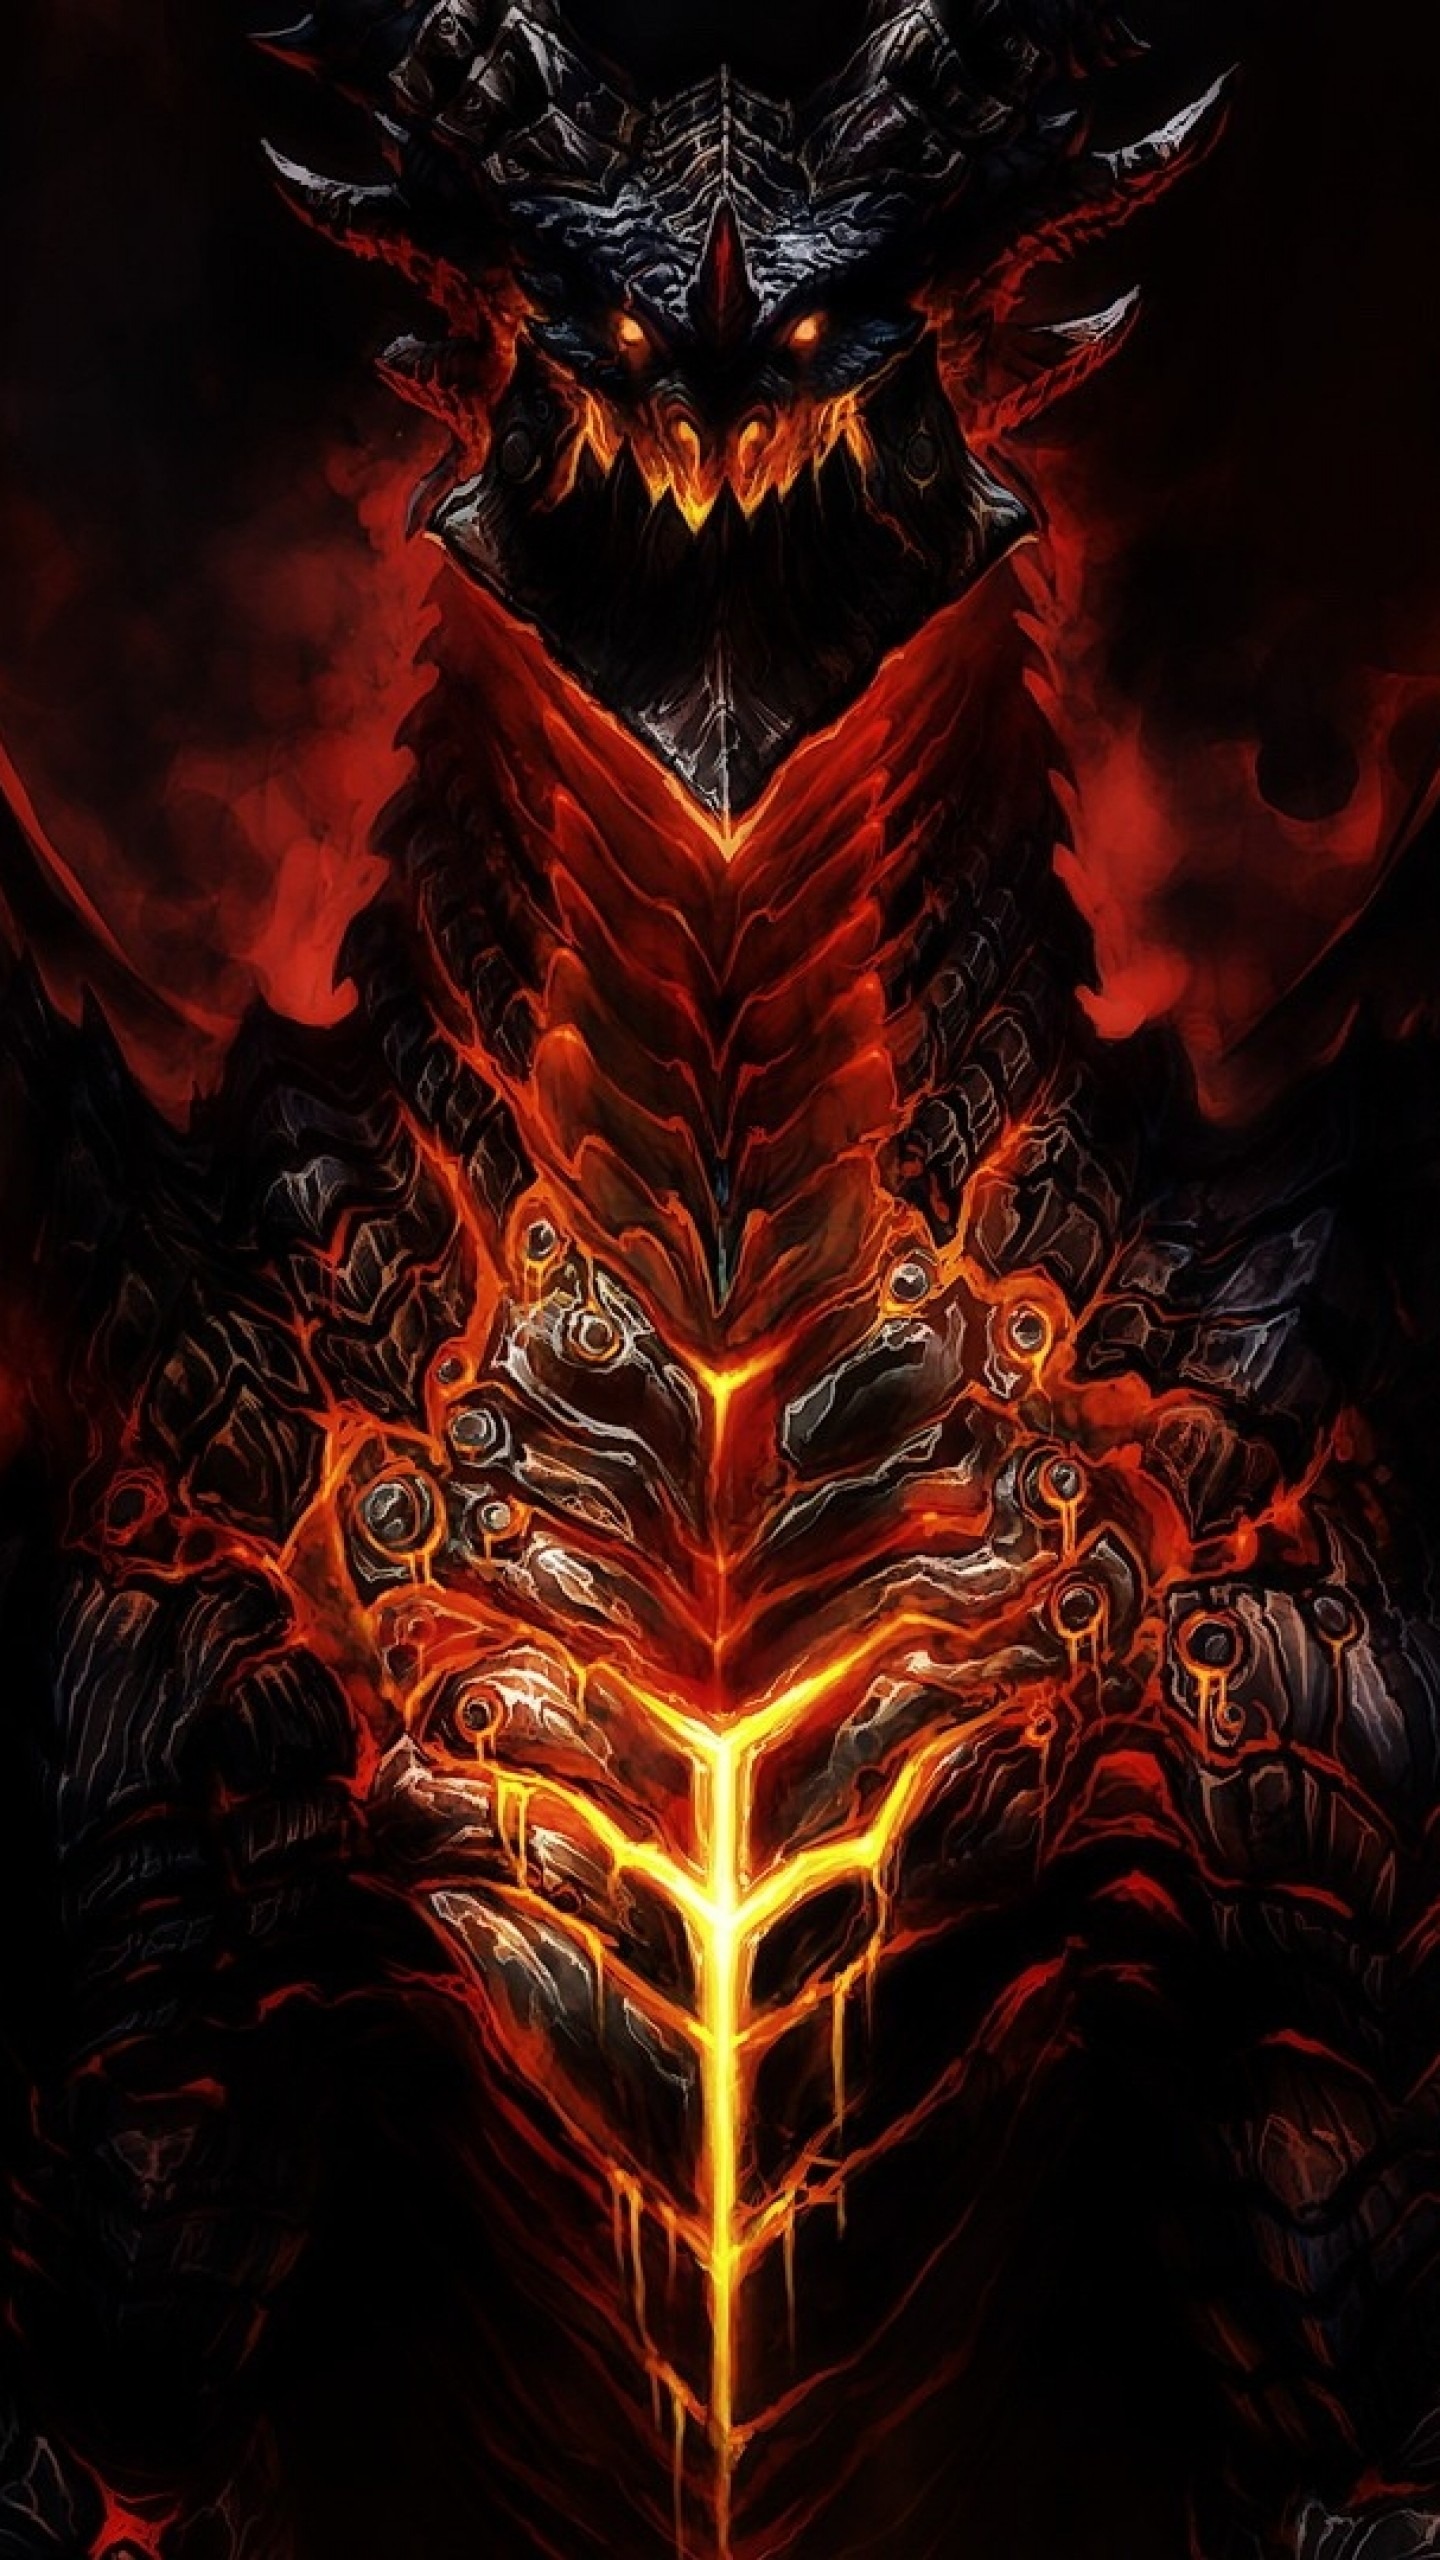 Wallpaper world of warcraft, dragon, characters, faces